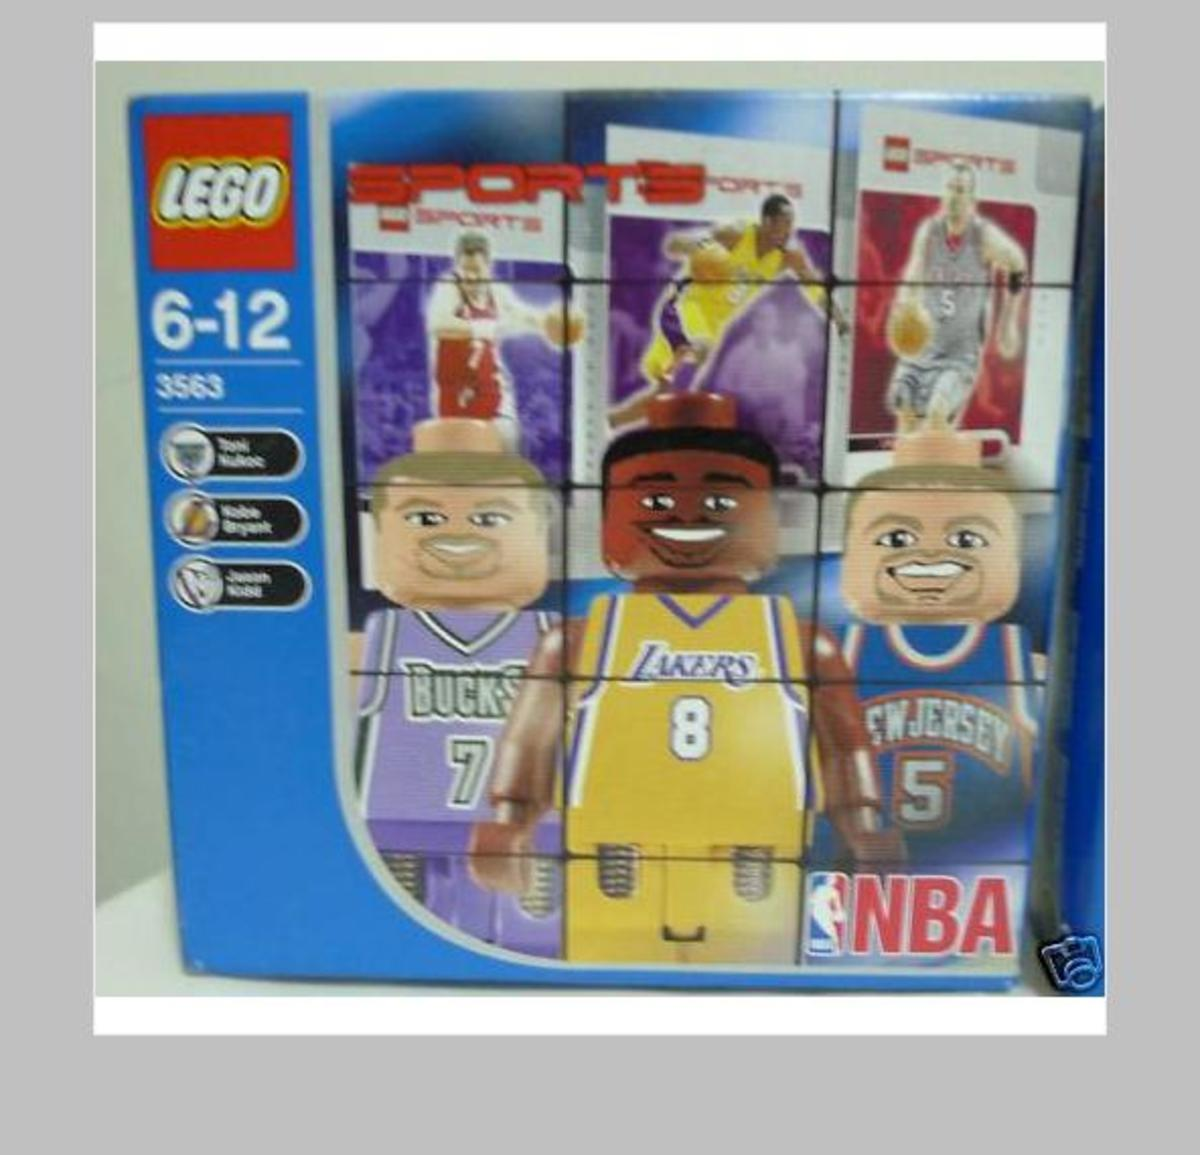 Lego NBA Collectors Set #4 in its box